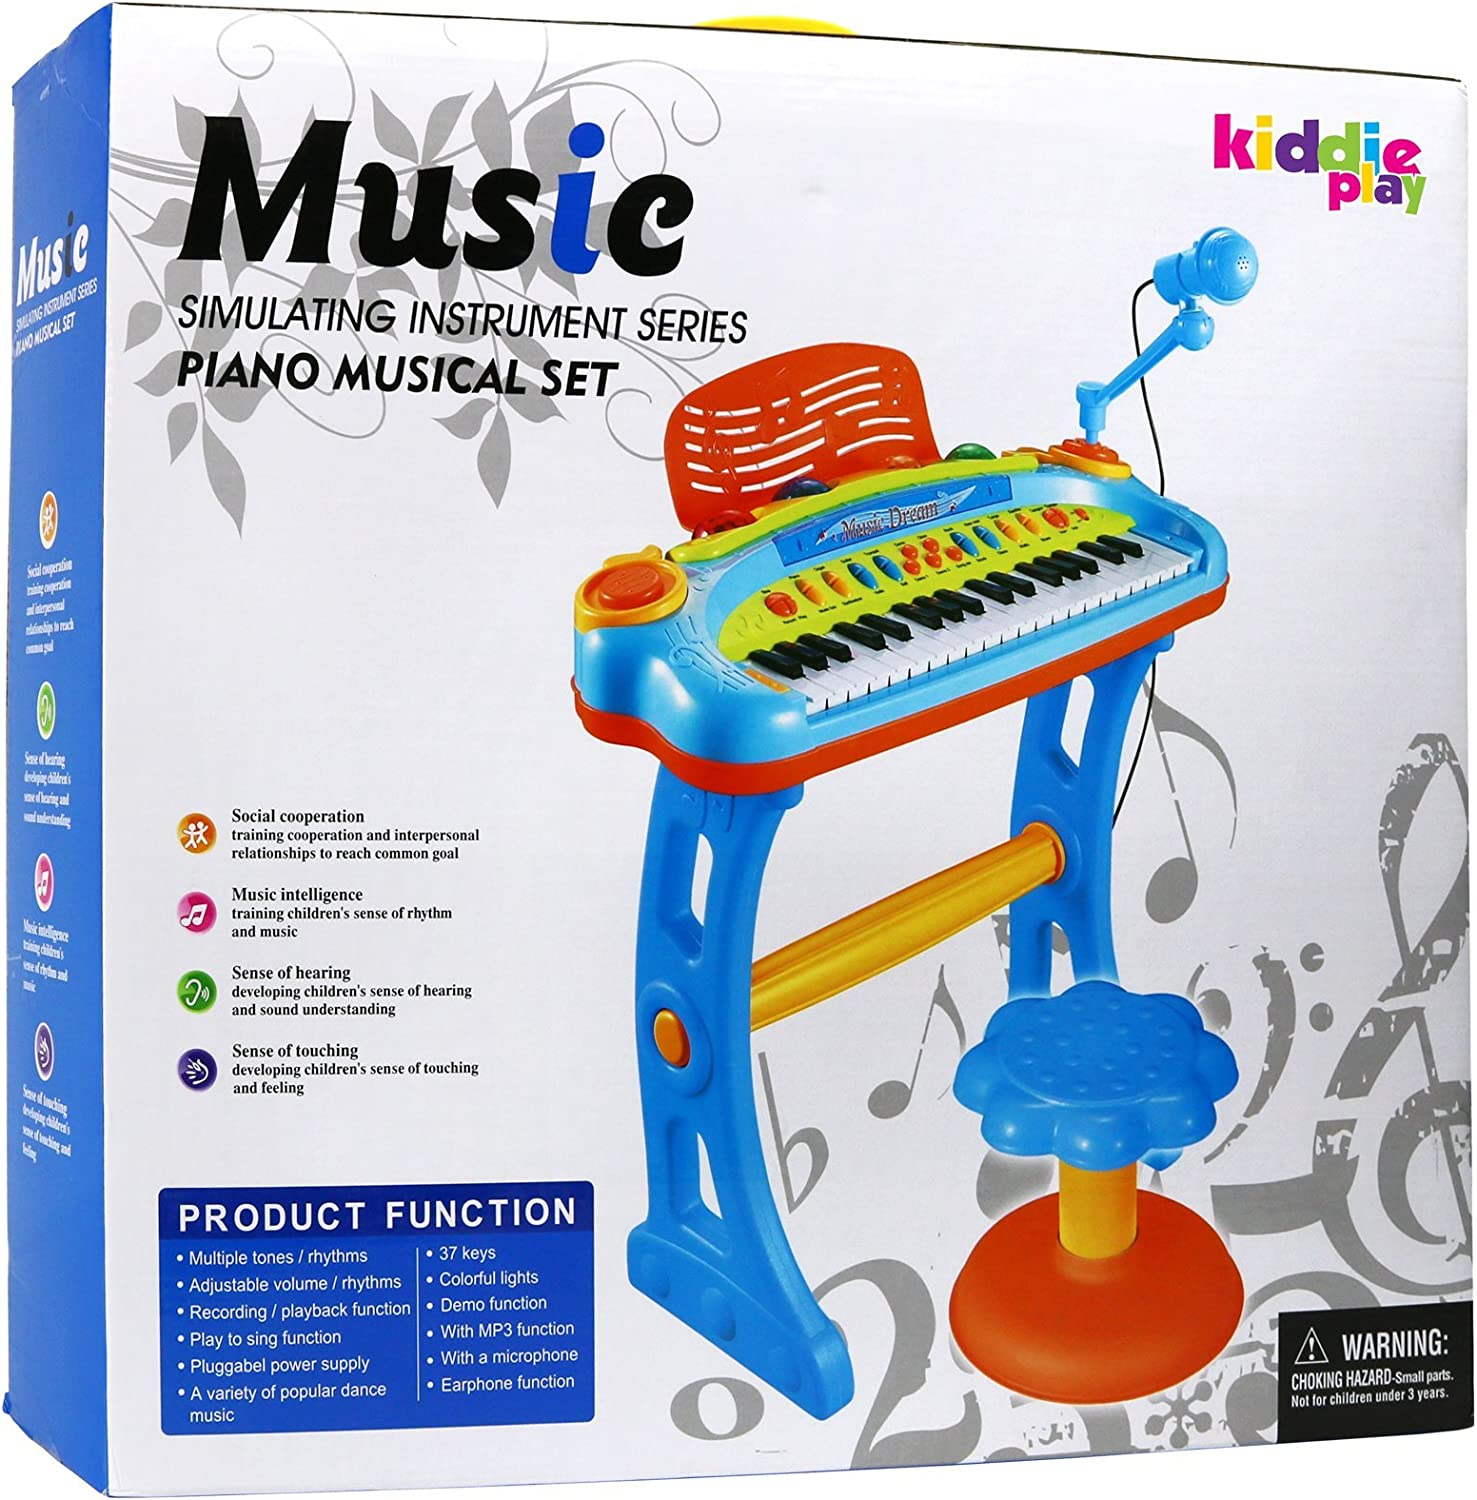 NEW KIDS MUSICAL TOY ROCKSTAR KEYBOARD PIANO TUNE SET WITH 8 SONG FLASHING LIGHT